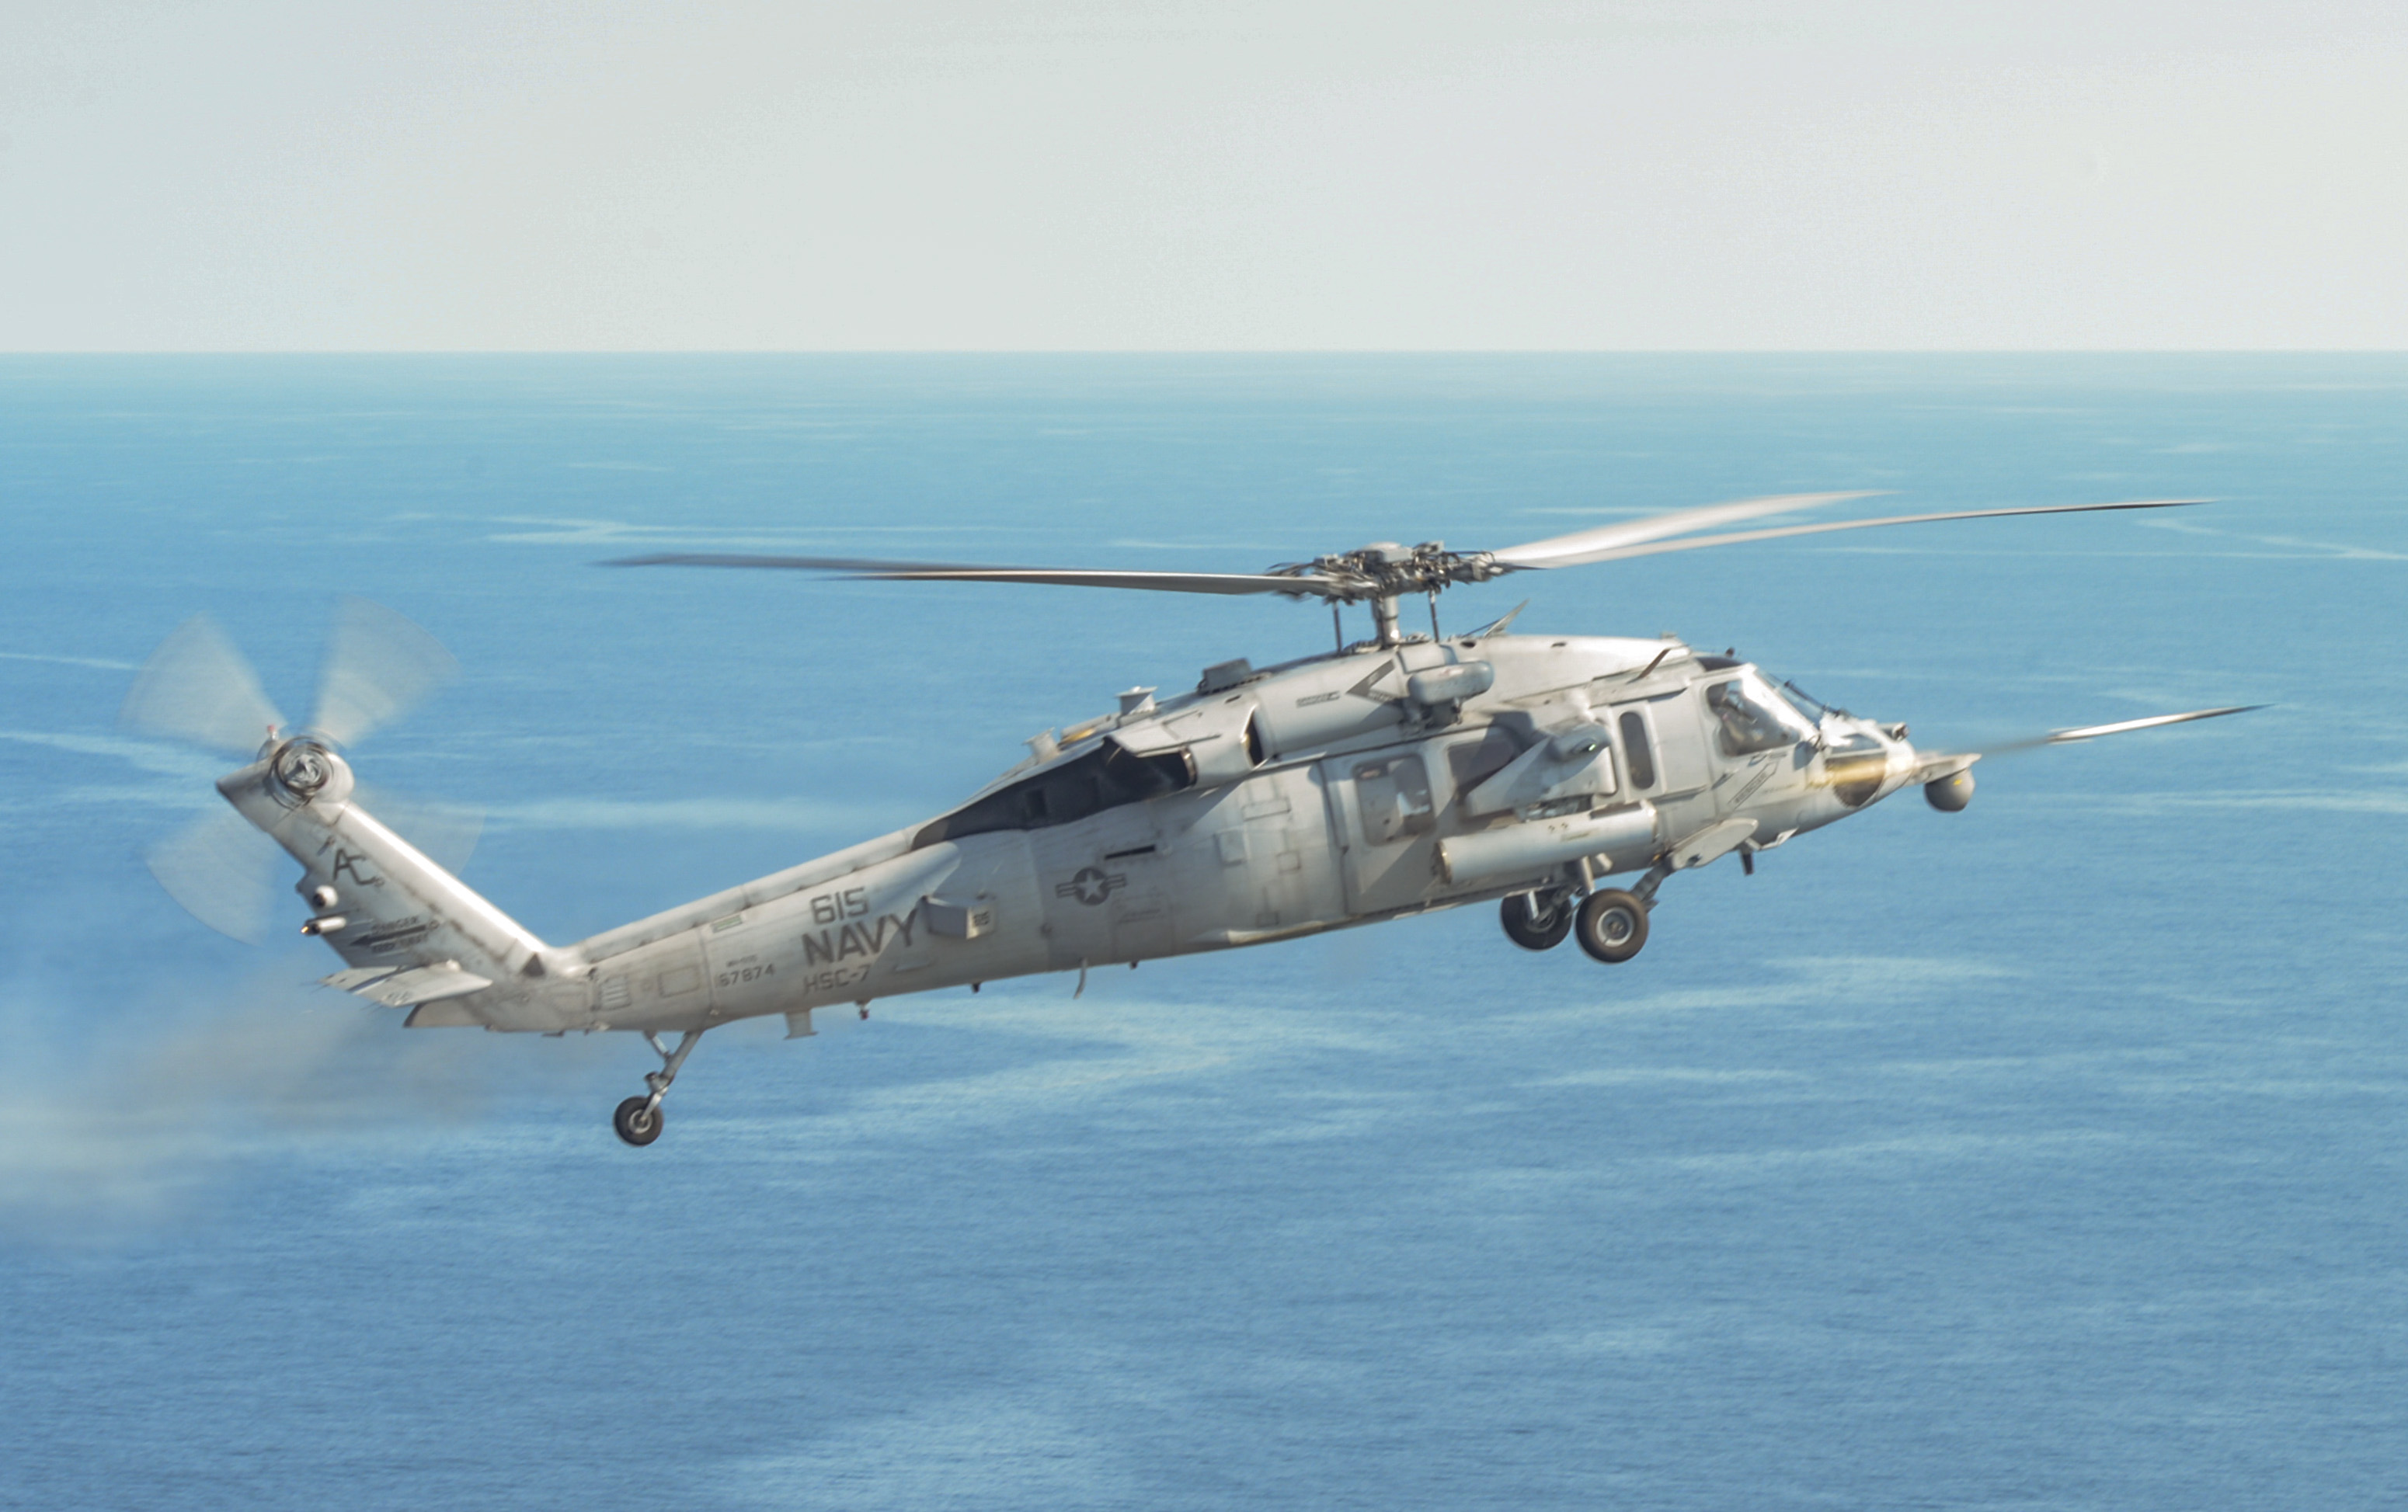 An SH-60S Sea Hawk helicopter attached to the Dusty Dogs of Helicopter Sea Combat Squadron (HSC) 7 fires an Advanced Precision Kill Weapon System II during a live-fire qualification exercise at a practice range off the Virginia coast. US Navy photo.